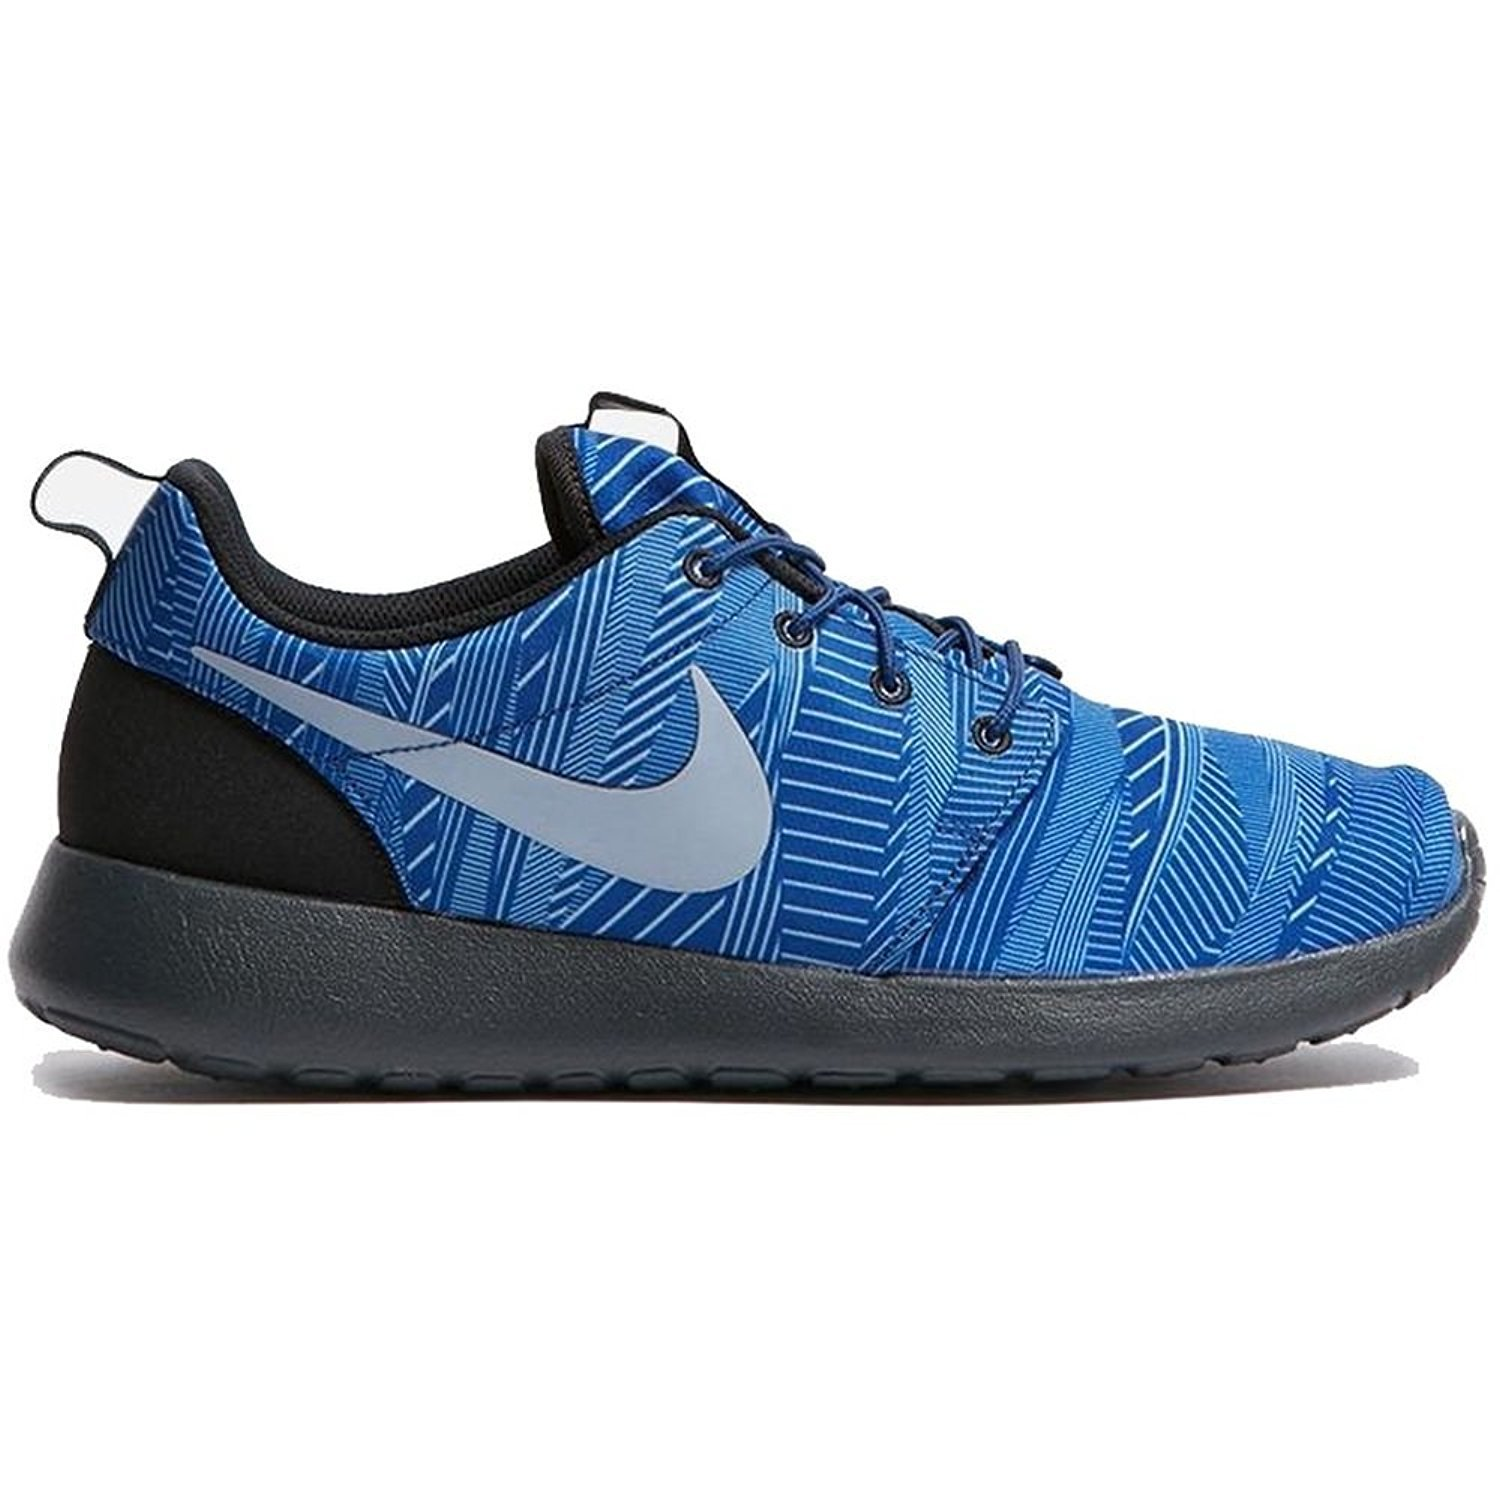 the best attitude f2e6d 4f692 Top1  NIKE 655206 Men s Roshe One Print, Stylish and Comfortable Casual  Sneakers